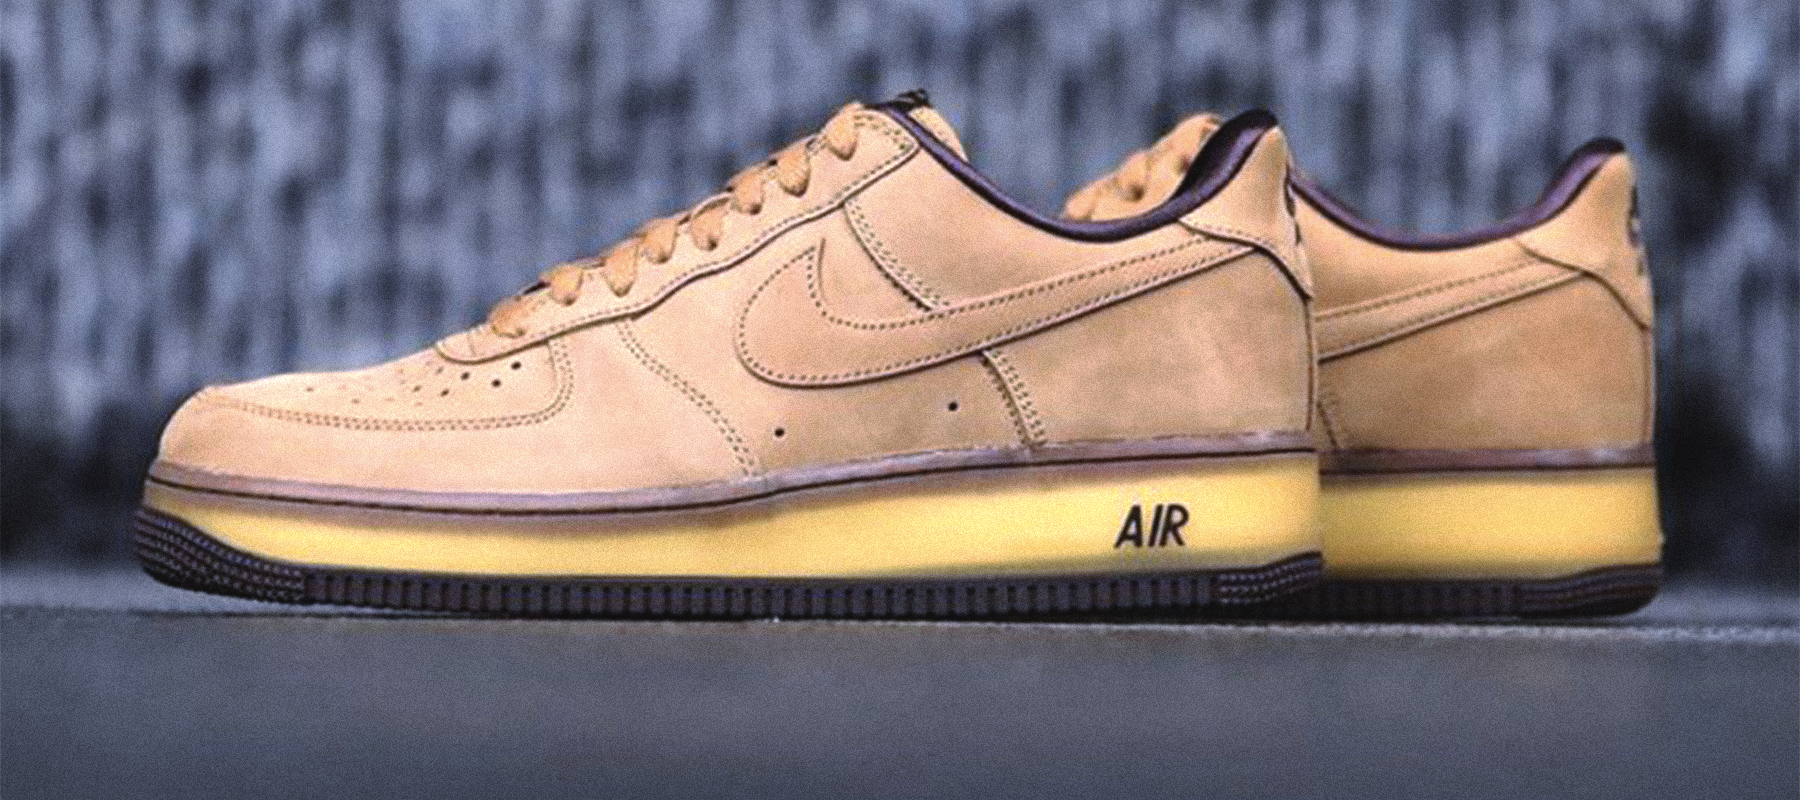 Nike Air Force 1 Low Wheat Mocha